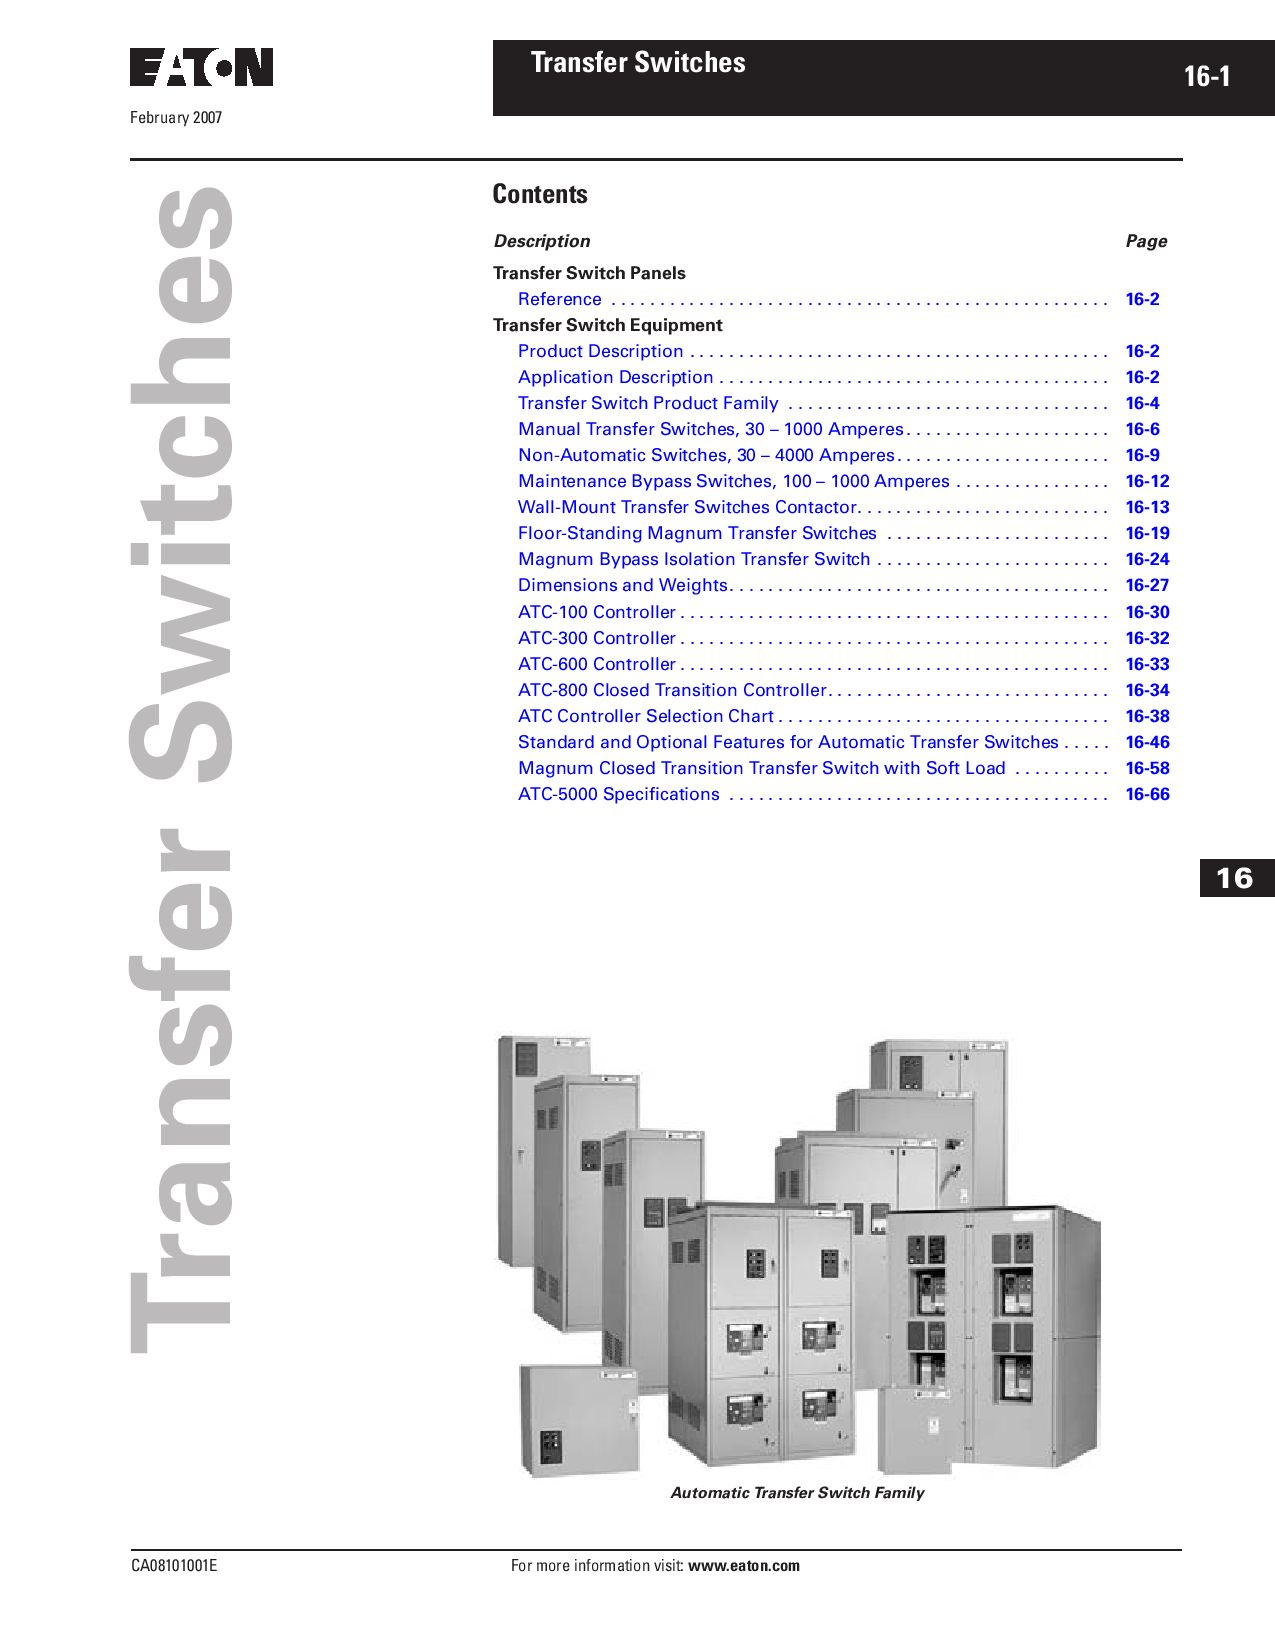 hight resolution of tab 16 transfer switches by greg campbell issuu